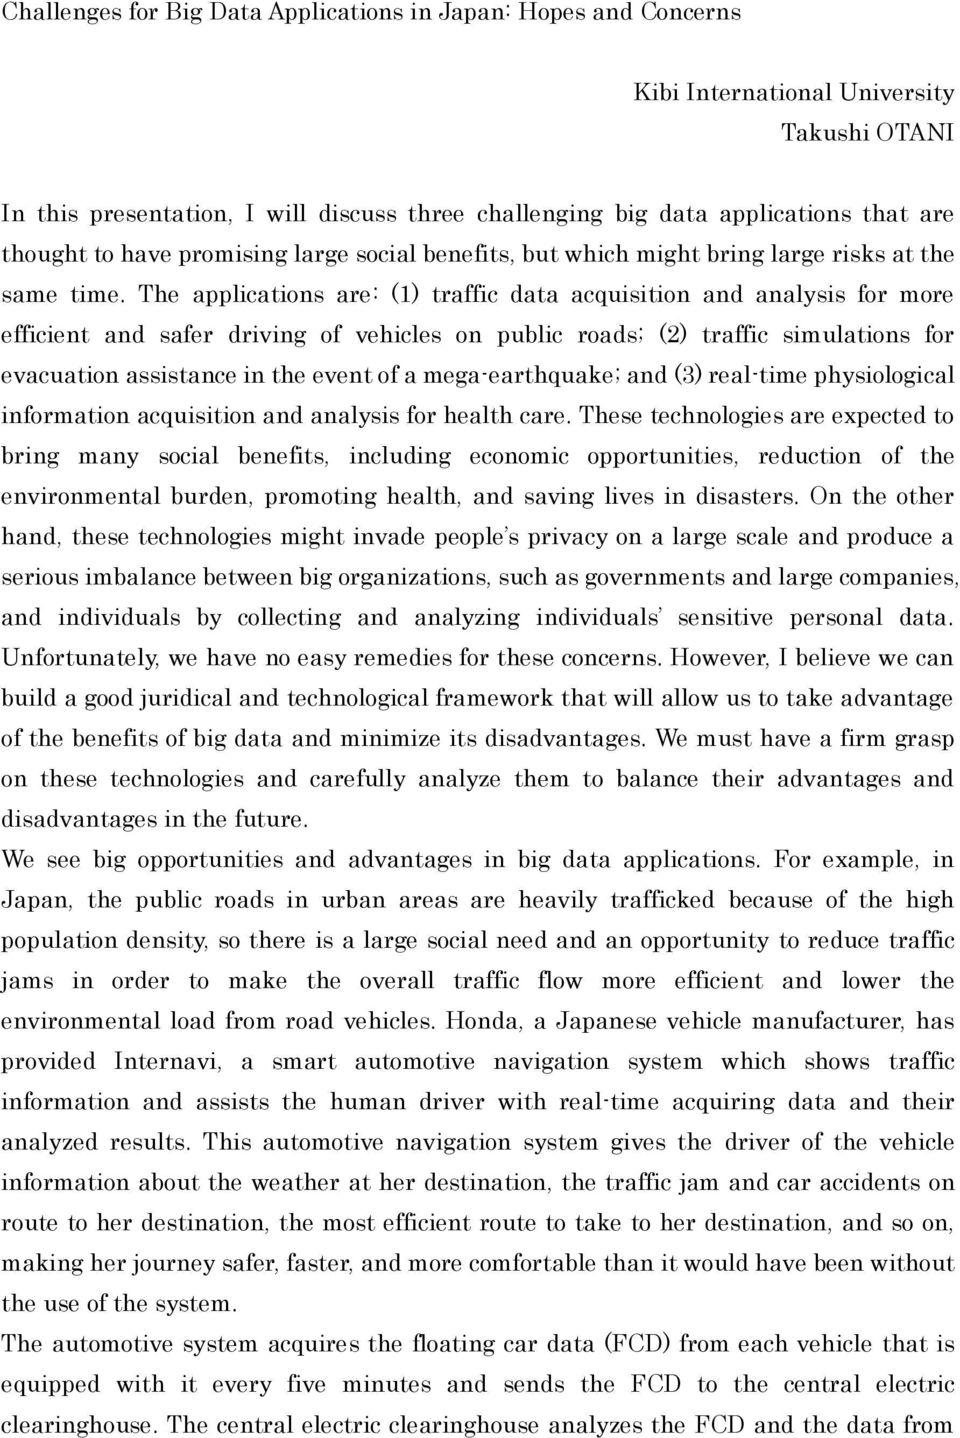 The applications are: (1) traffic data acquisition and analysis for more efficient and safer driving of vehicles on public roads; (2) traffic simulations for evacuation assistance in the event of a